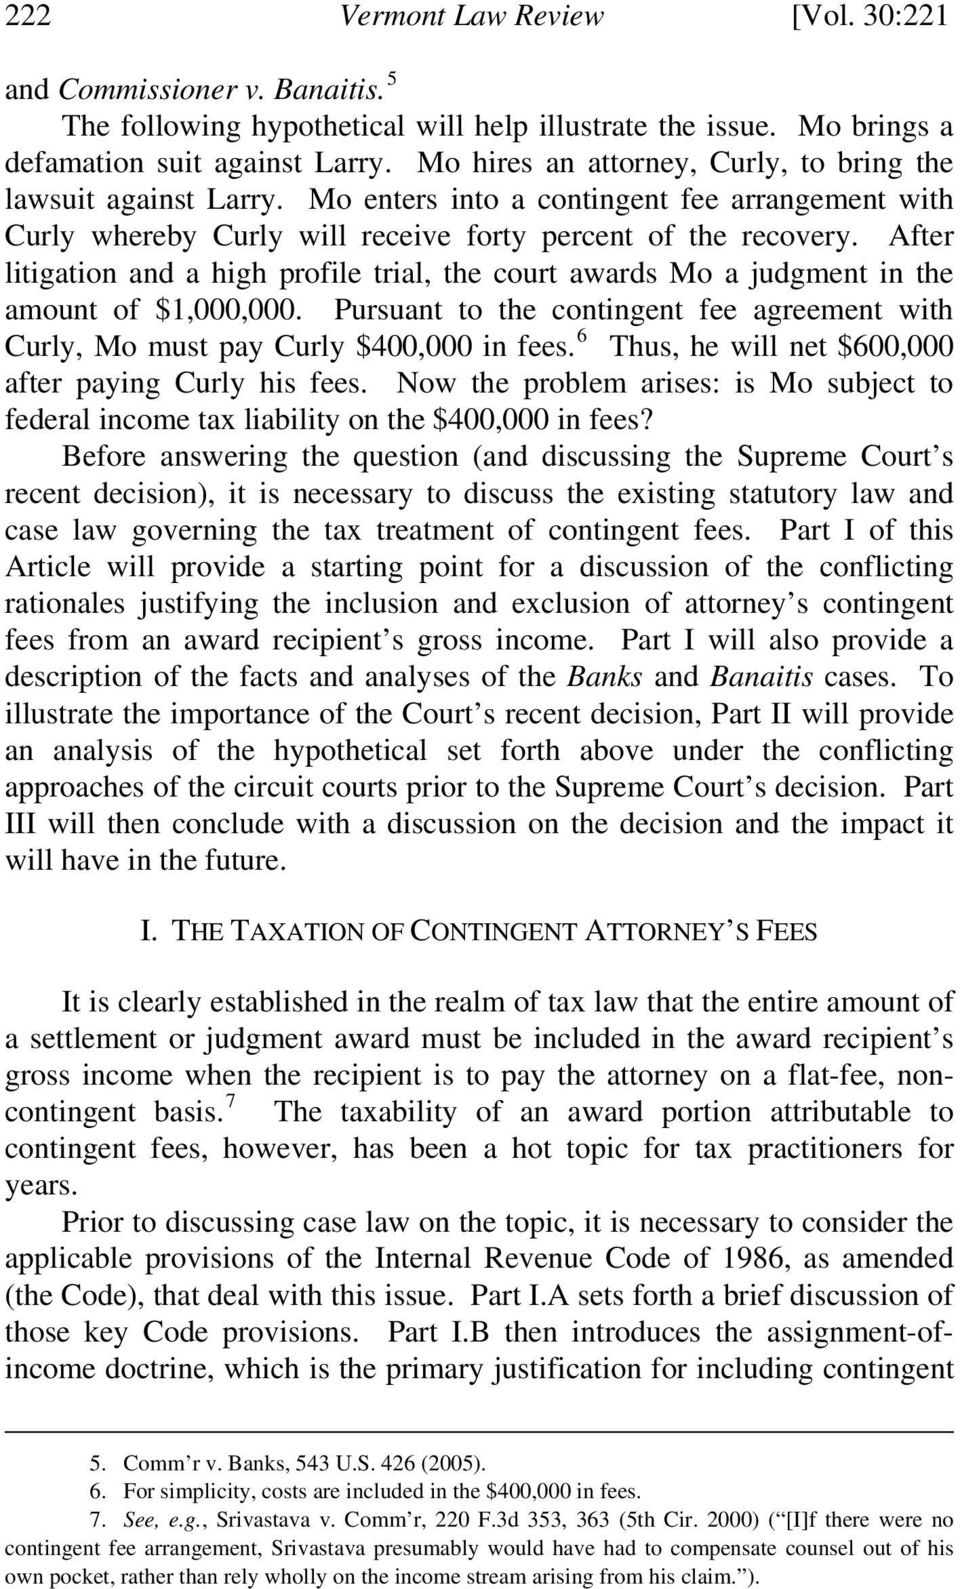 After litigation and a high profile trial, the court awards Mo a judgment in the amount of $1,000,000. Pursuant to the contingent fee agreement with Curly, Mo must pay Curly $400,000 in fees.